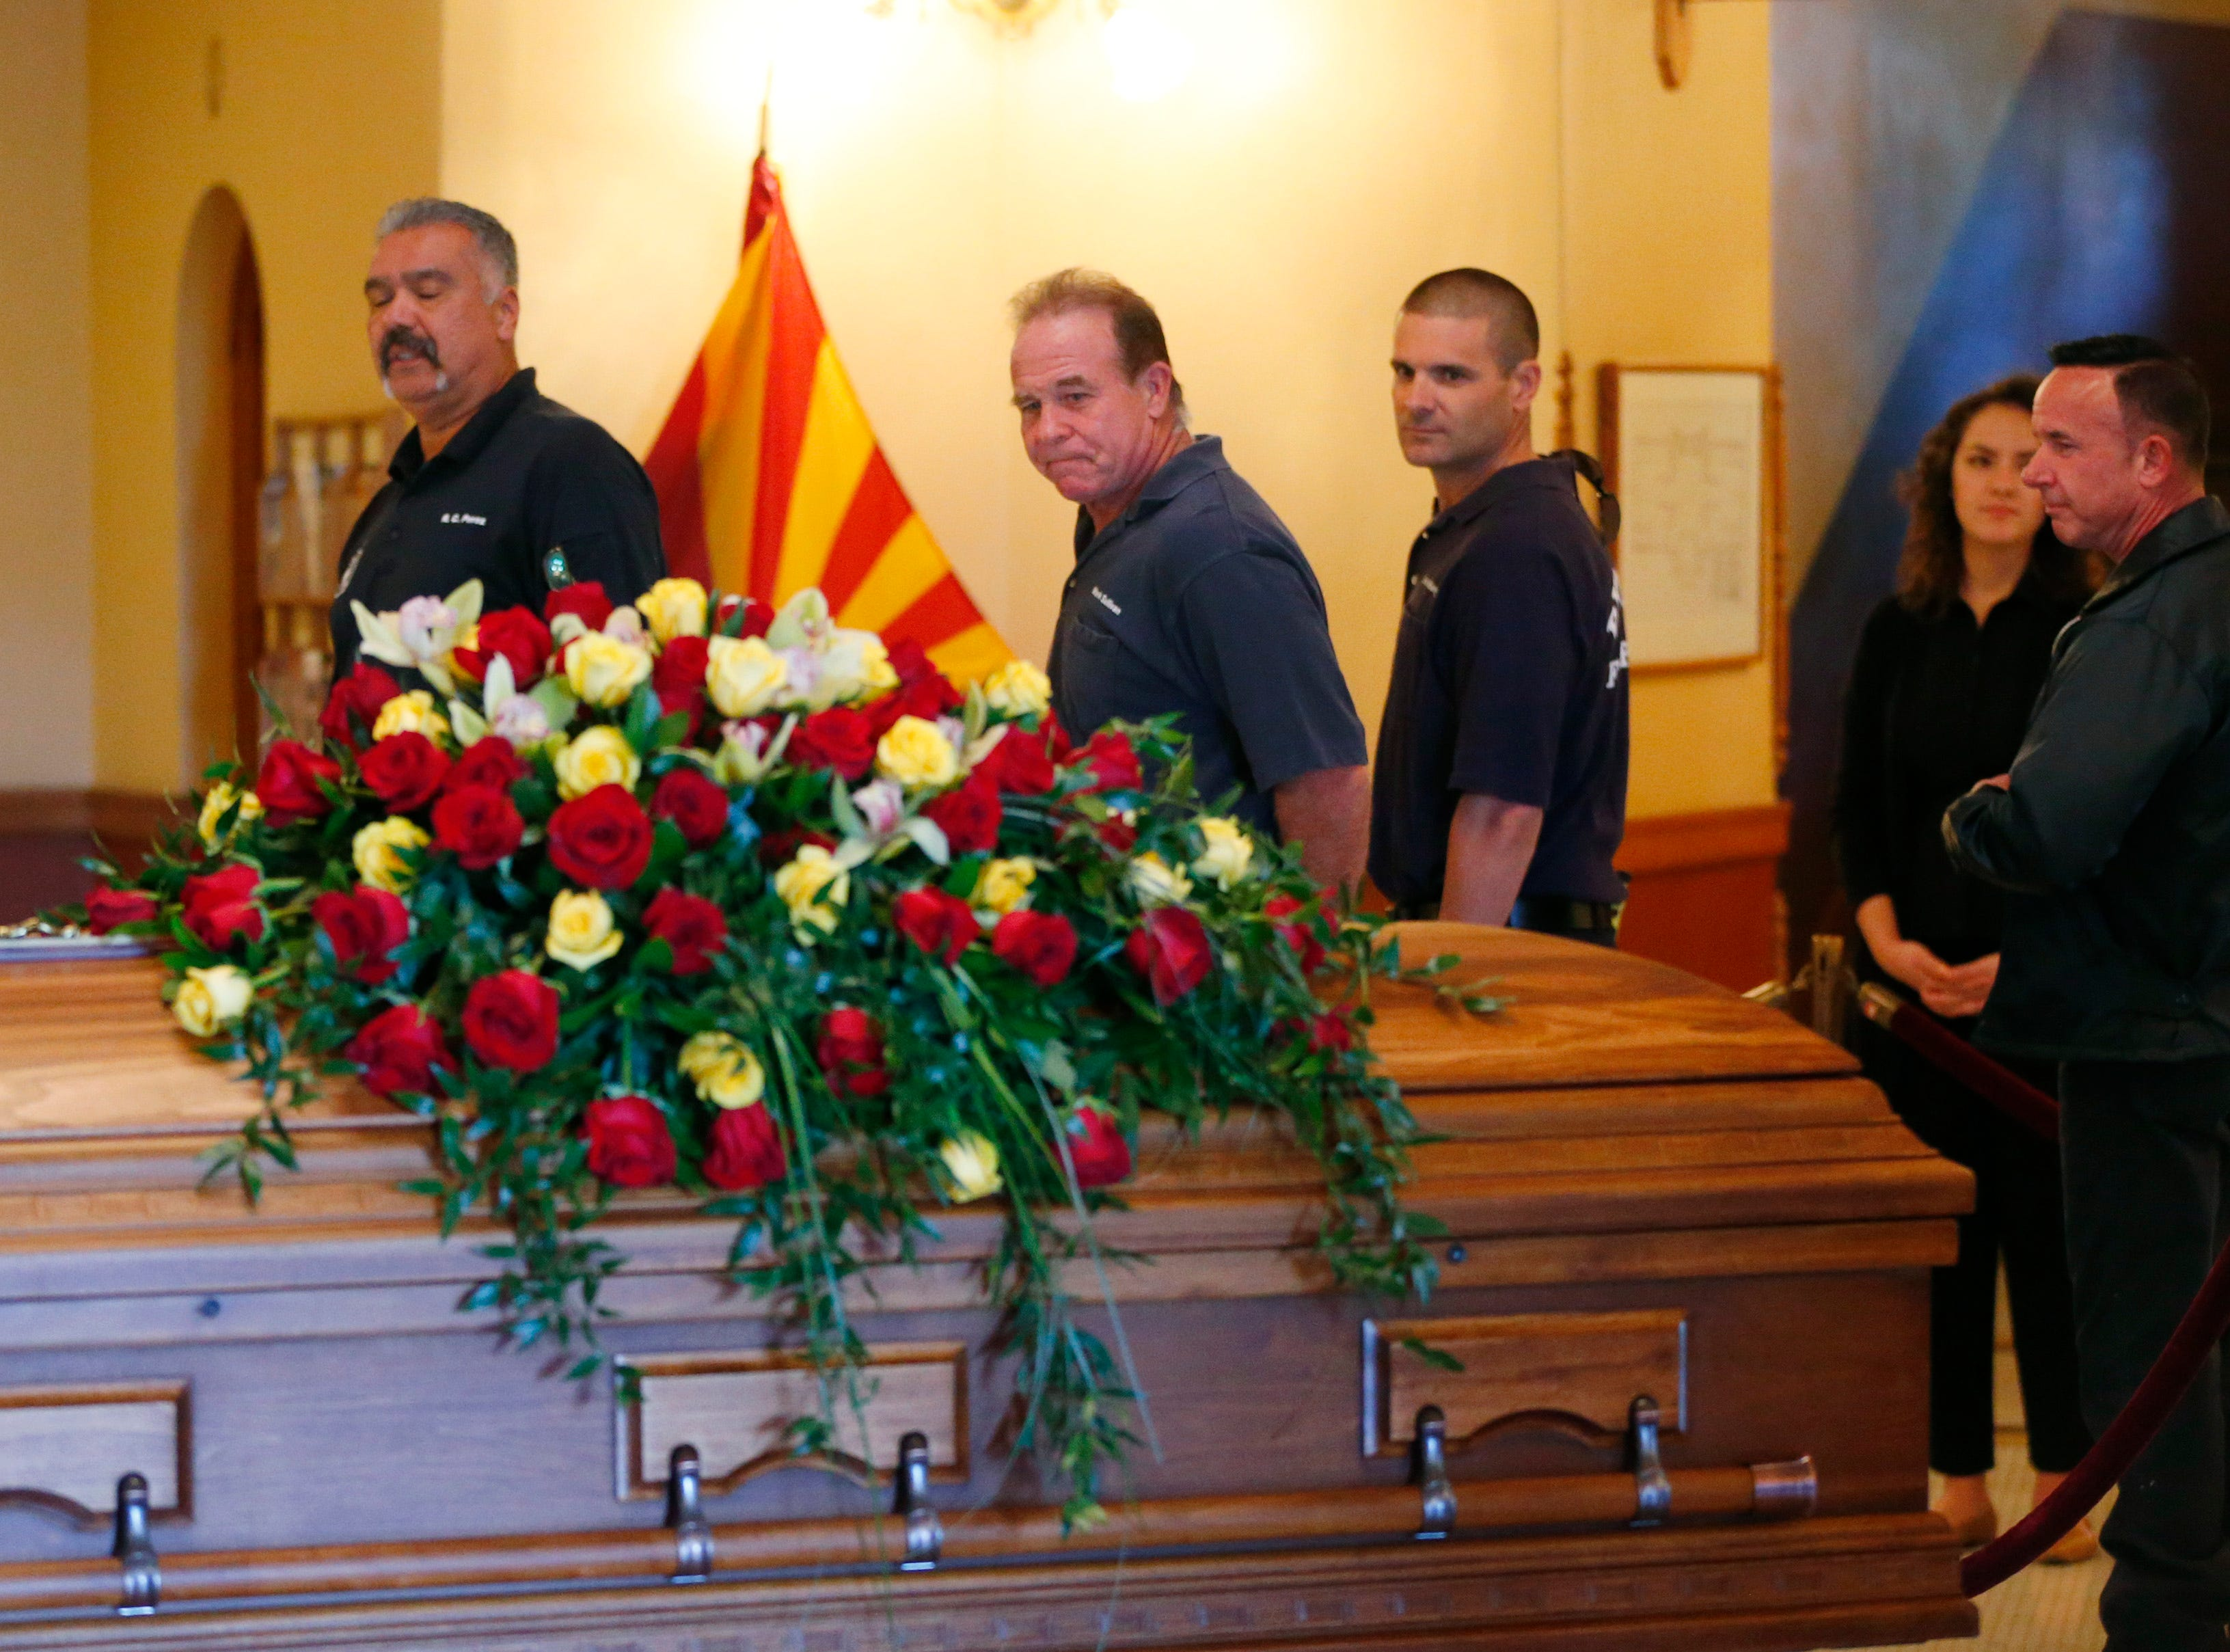 Phoenix firefighters pay their respect to former U.S. Rep. Ed Pastor as he lies in state at the Arizona Capitol, Dec. 2, 2018.